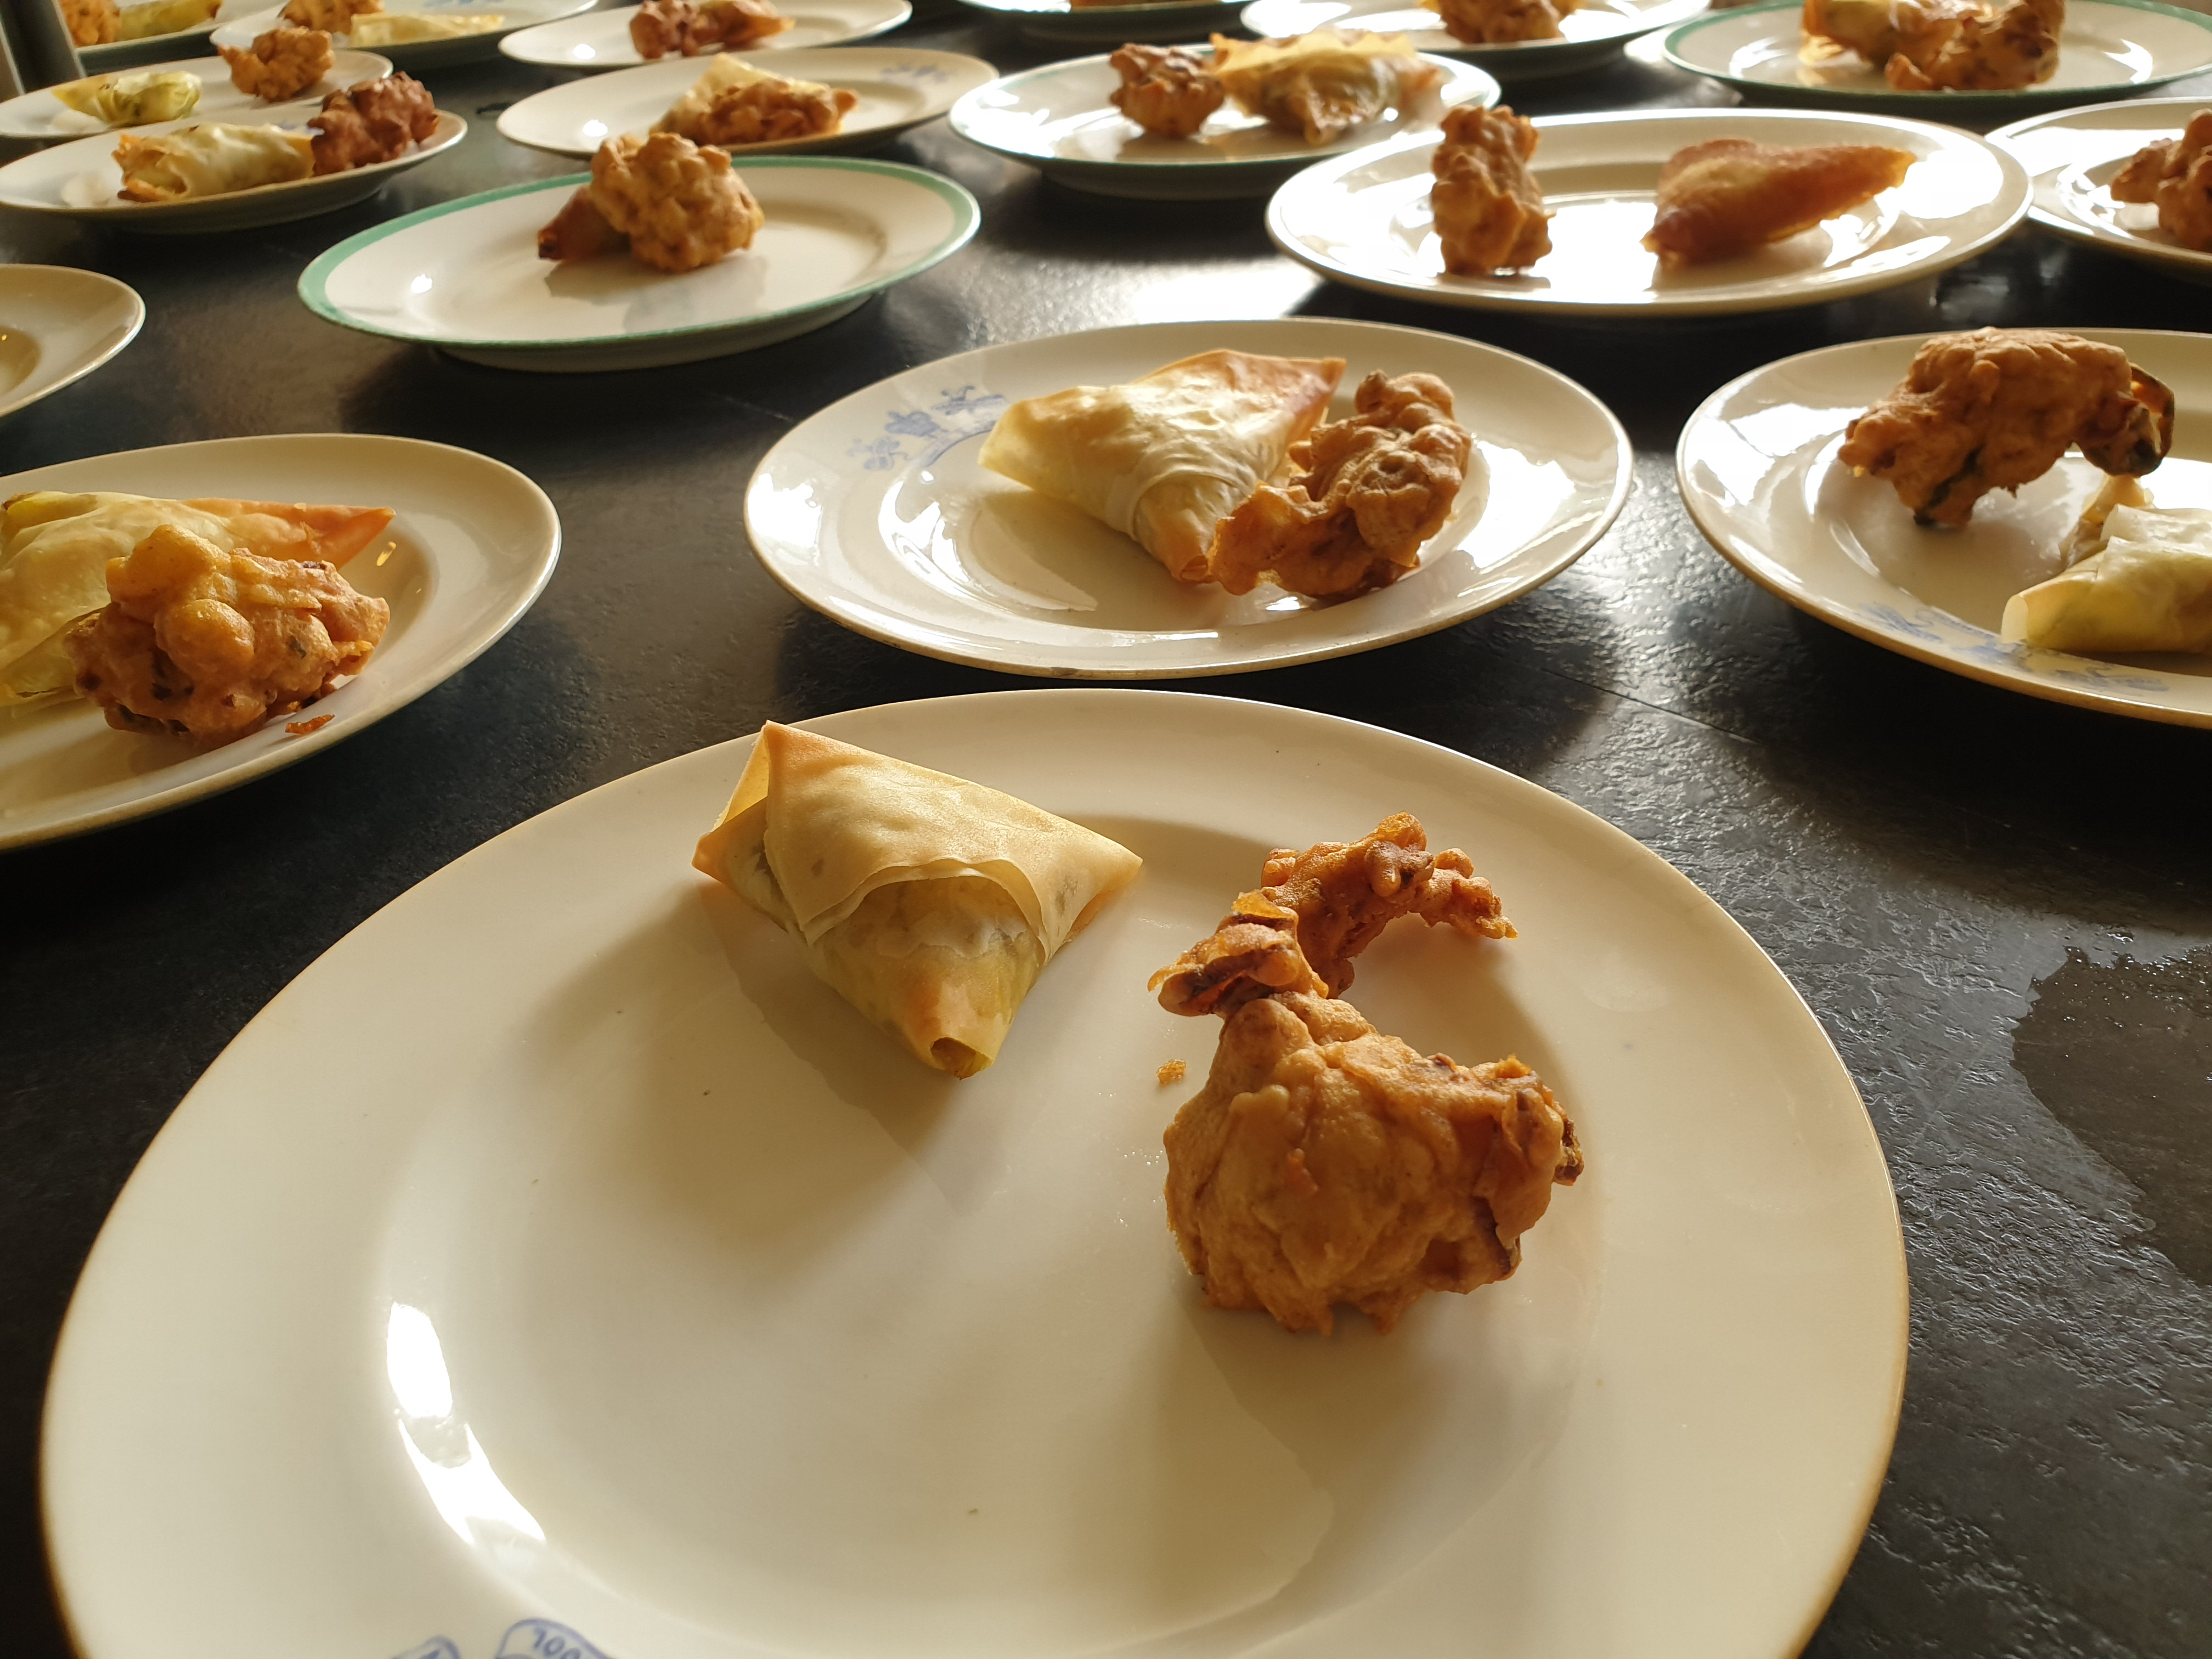 Samosas and bhajis at our World Cookery Demo, June 2019